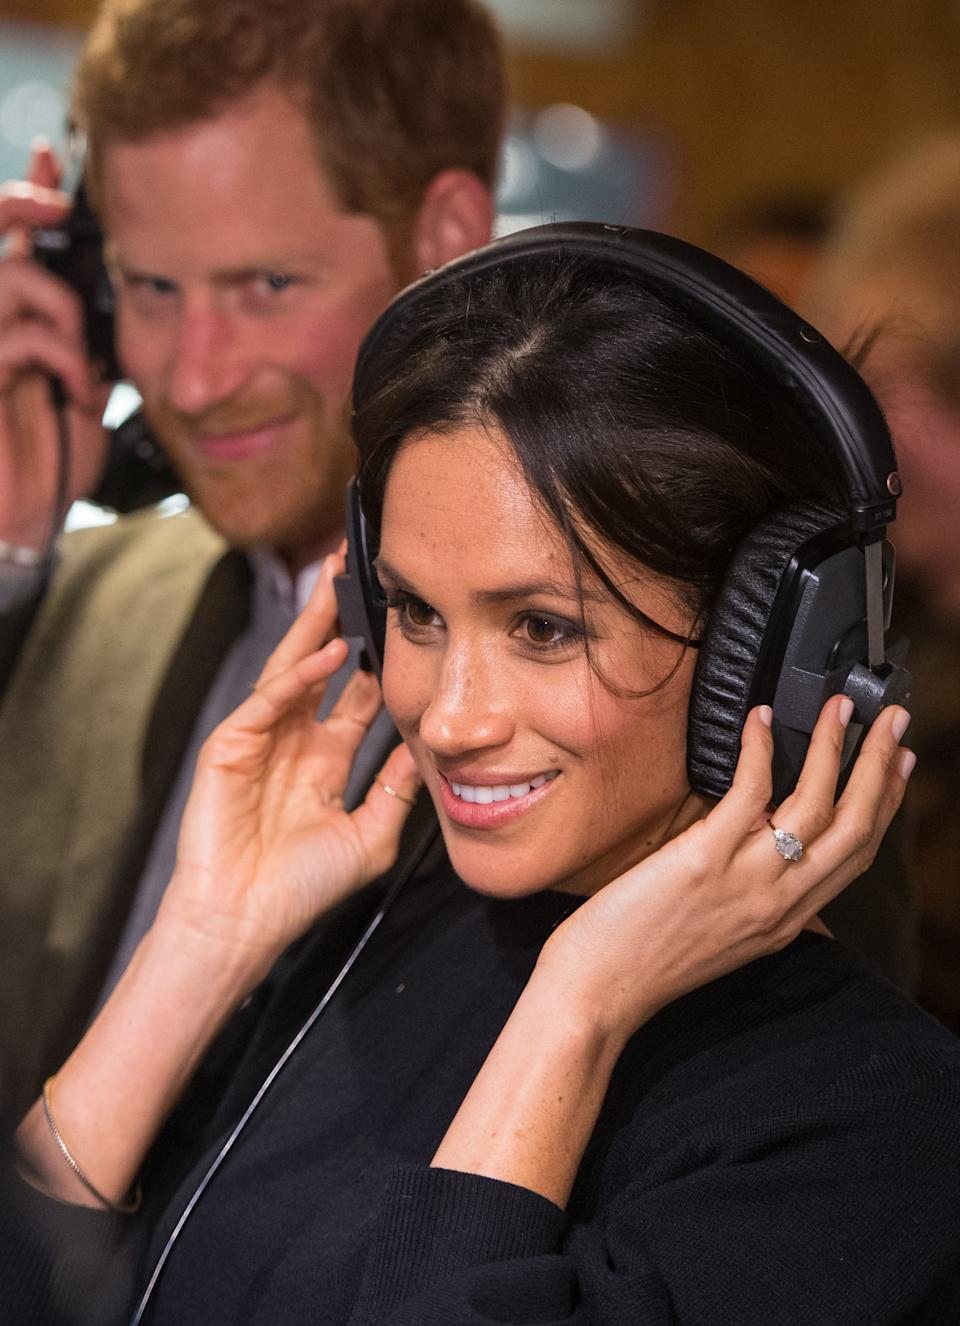 Prince Harry and Meghan Markle during a visit to youth-orientated radio station, Reprezent FM, in Brixton, south London to learn about its work supporting young people.. Picture date: Tuesday January 9, 2018. The Reprezent training programme was established 10 years ago in response to the rise in knife crime, to help young people develop and socialise through radio.